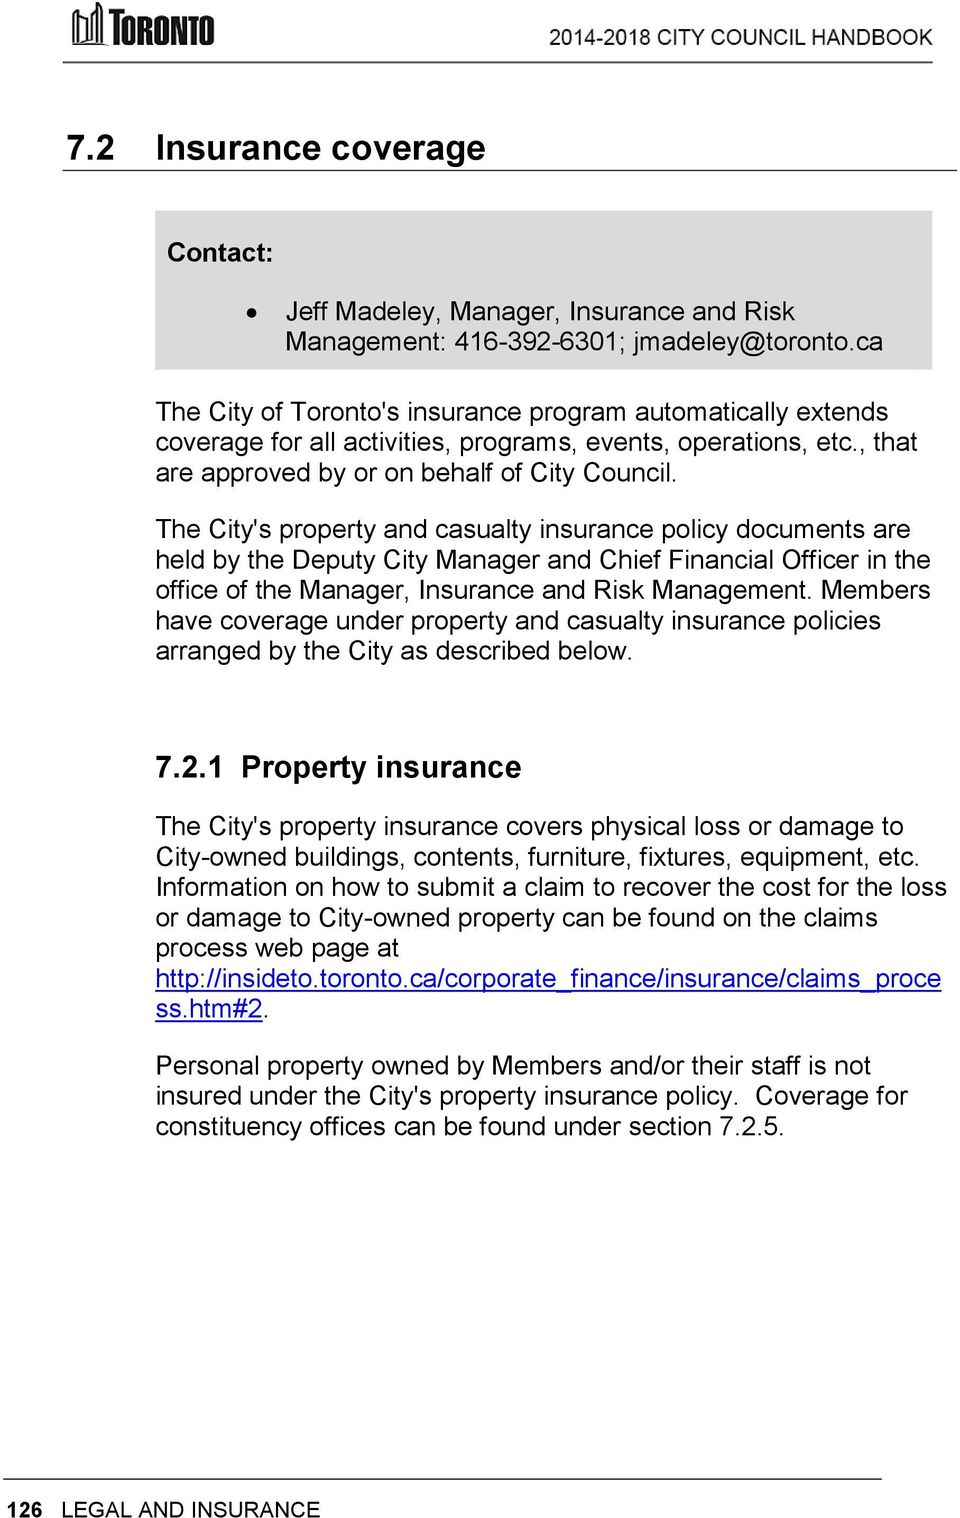 The City's property and casualty insurance policy documents are held by the Deputy City Manager and Chief Financial Officer in the office of the Manager, Insurance and Risk Management.